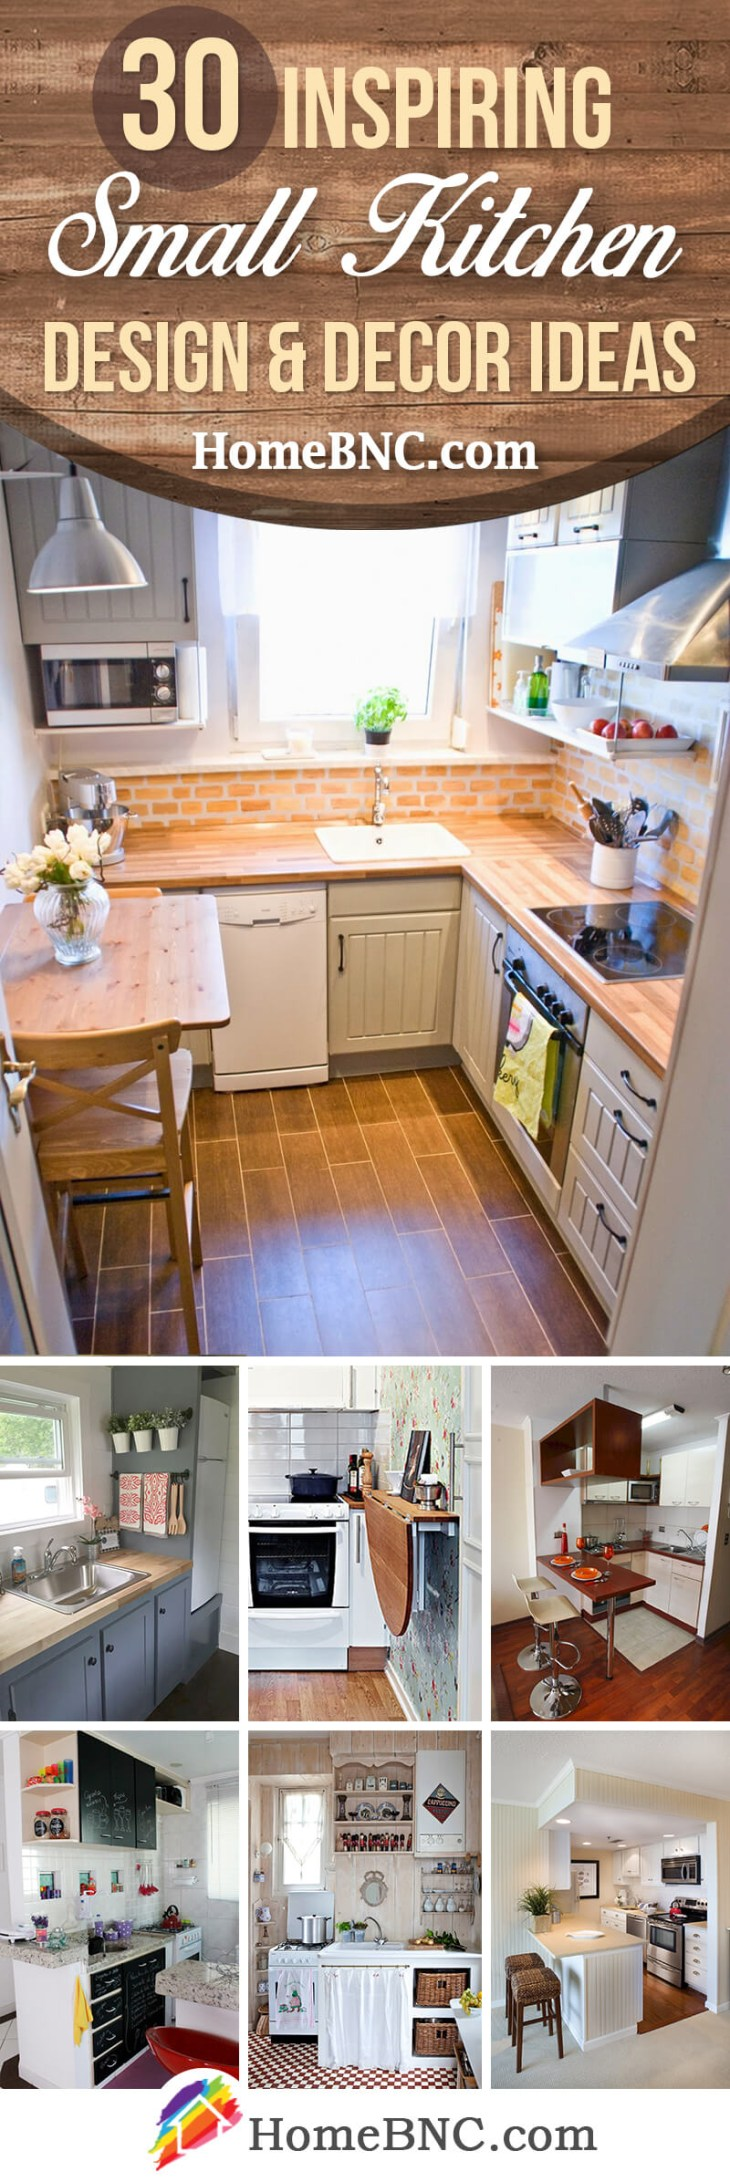 30 Amazing Small Kitchen Design and Decor Ideas to Make Your Space Uniquely  Yours